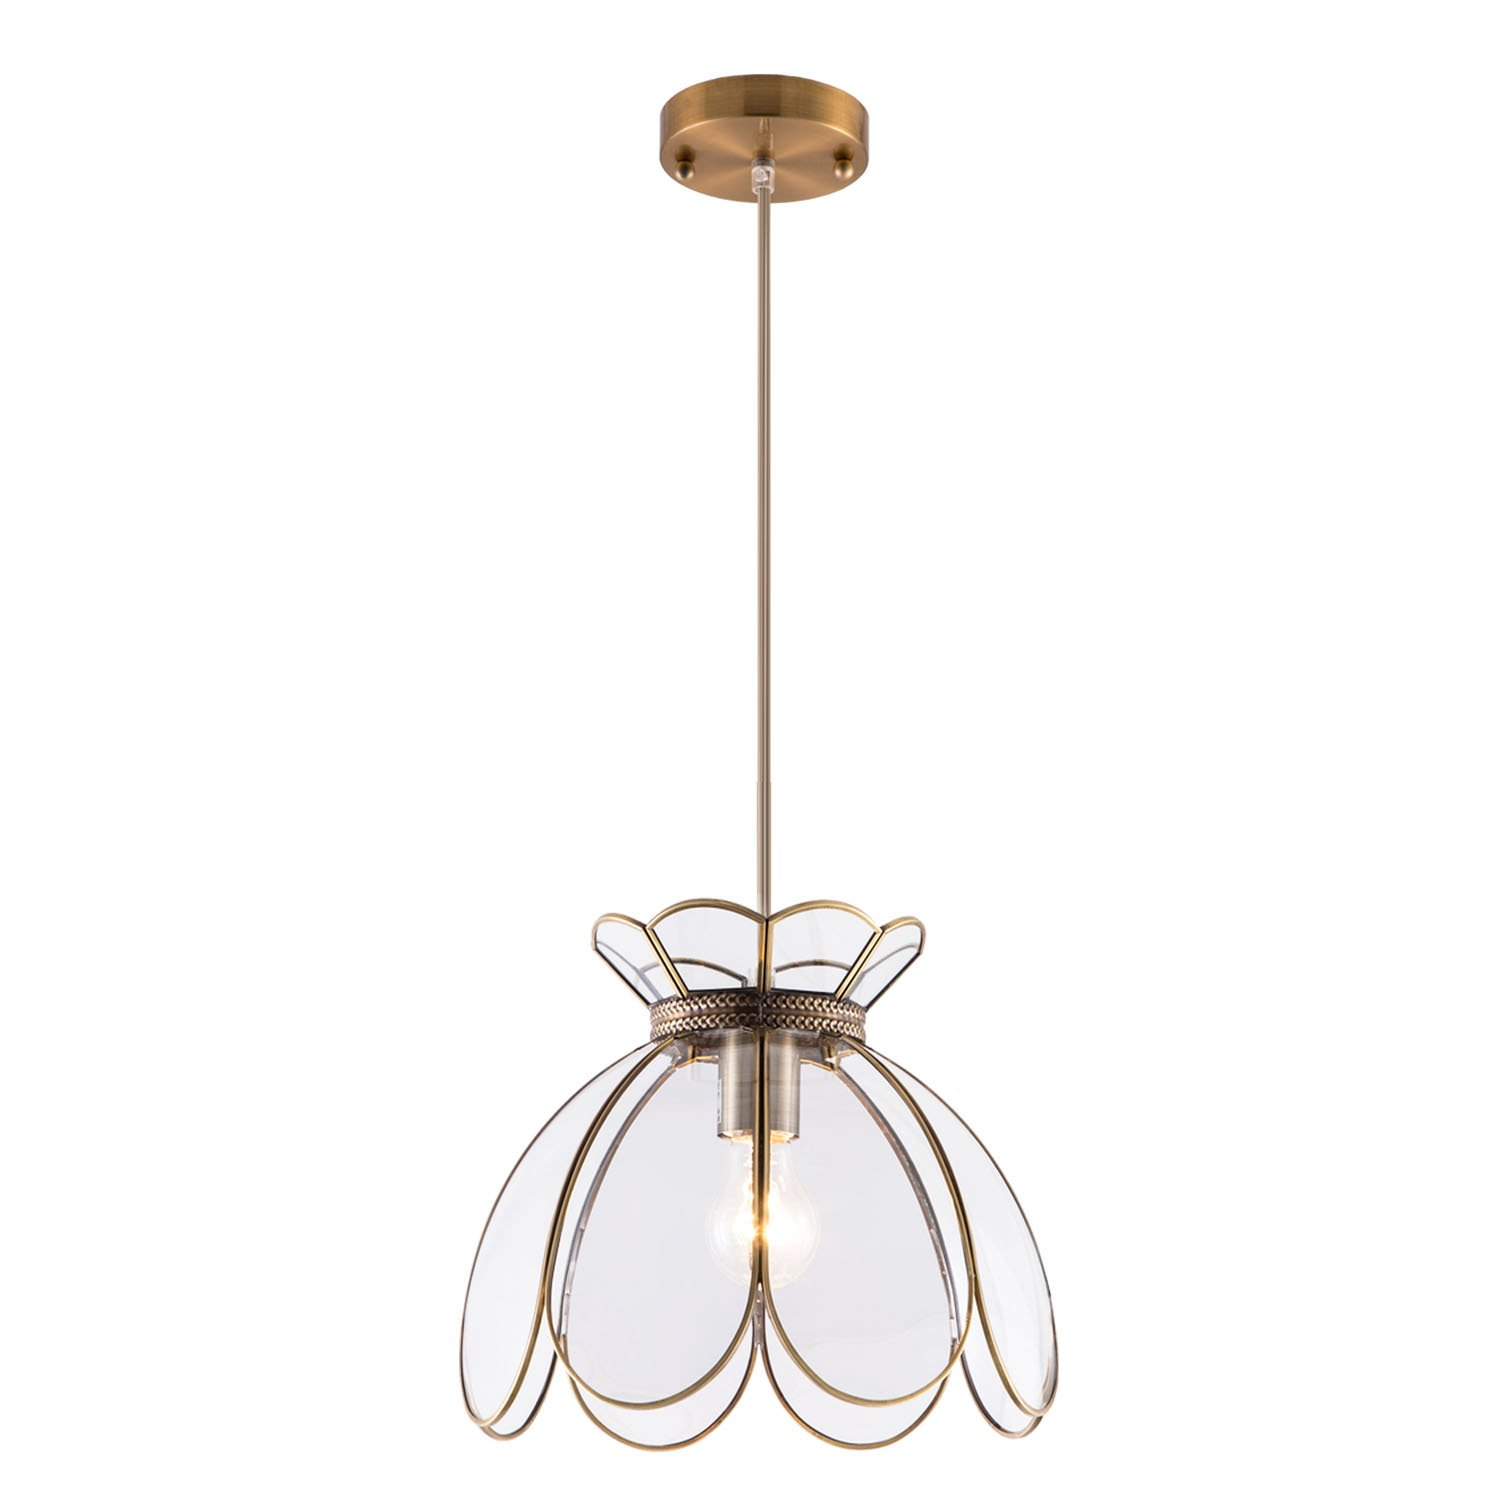 YIFI Vintage Lotus Flower One Light Pendant Lighting in Bronze and Glass Oriental Mini Chandeliers Antique Brass Ceiling Light Fixture for Kitchen Island Dining Room Bedroom Living Room, Clear by YIFI (Image #1)